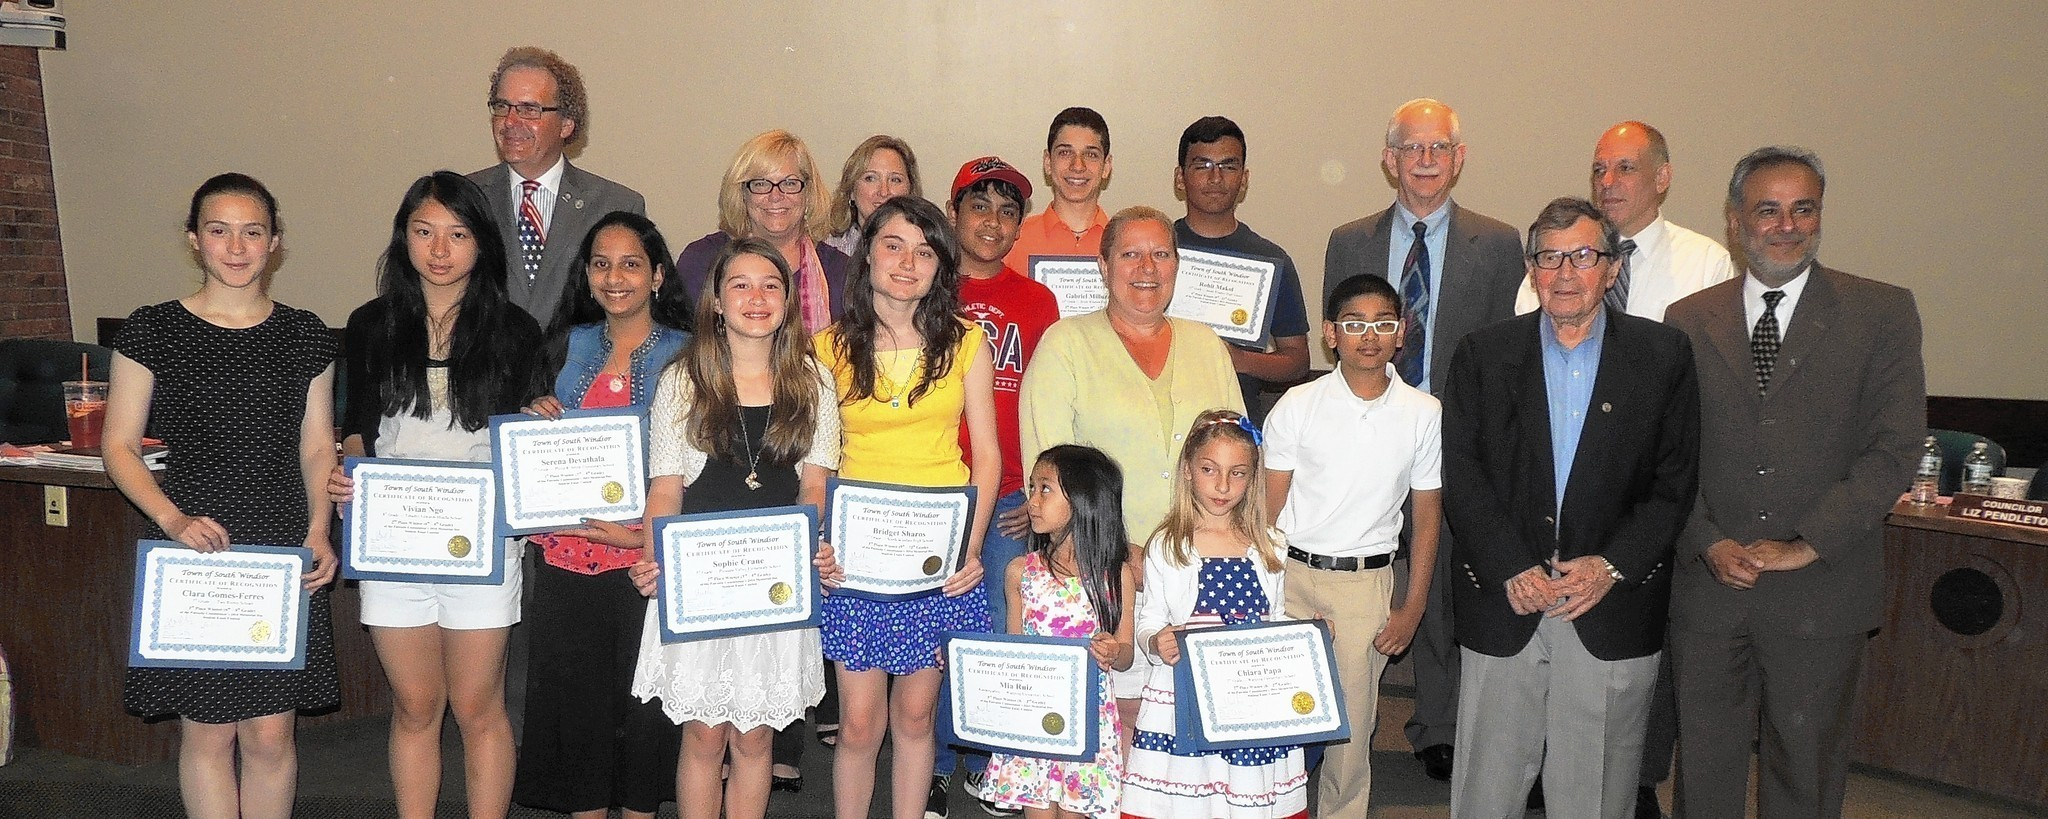 patriotic essay thumb jpg essay on patriotism an essay on  south windsor patriotic commission announces winners of memorial south windsor patriotic commission announces winners of memorial